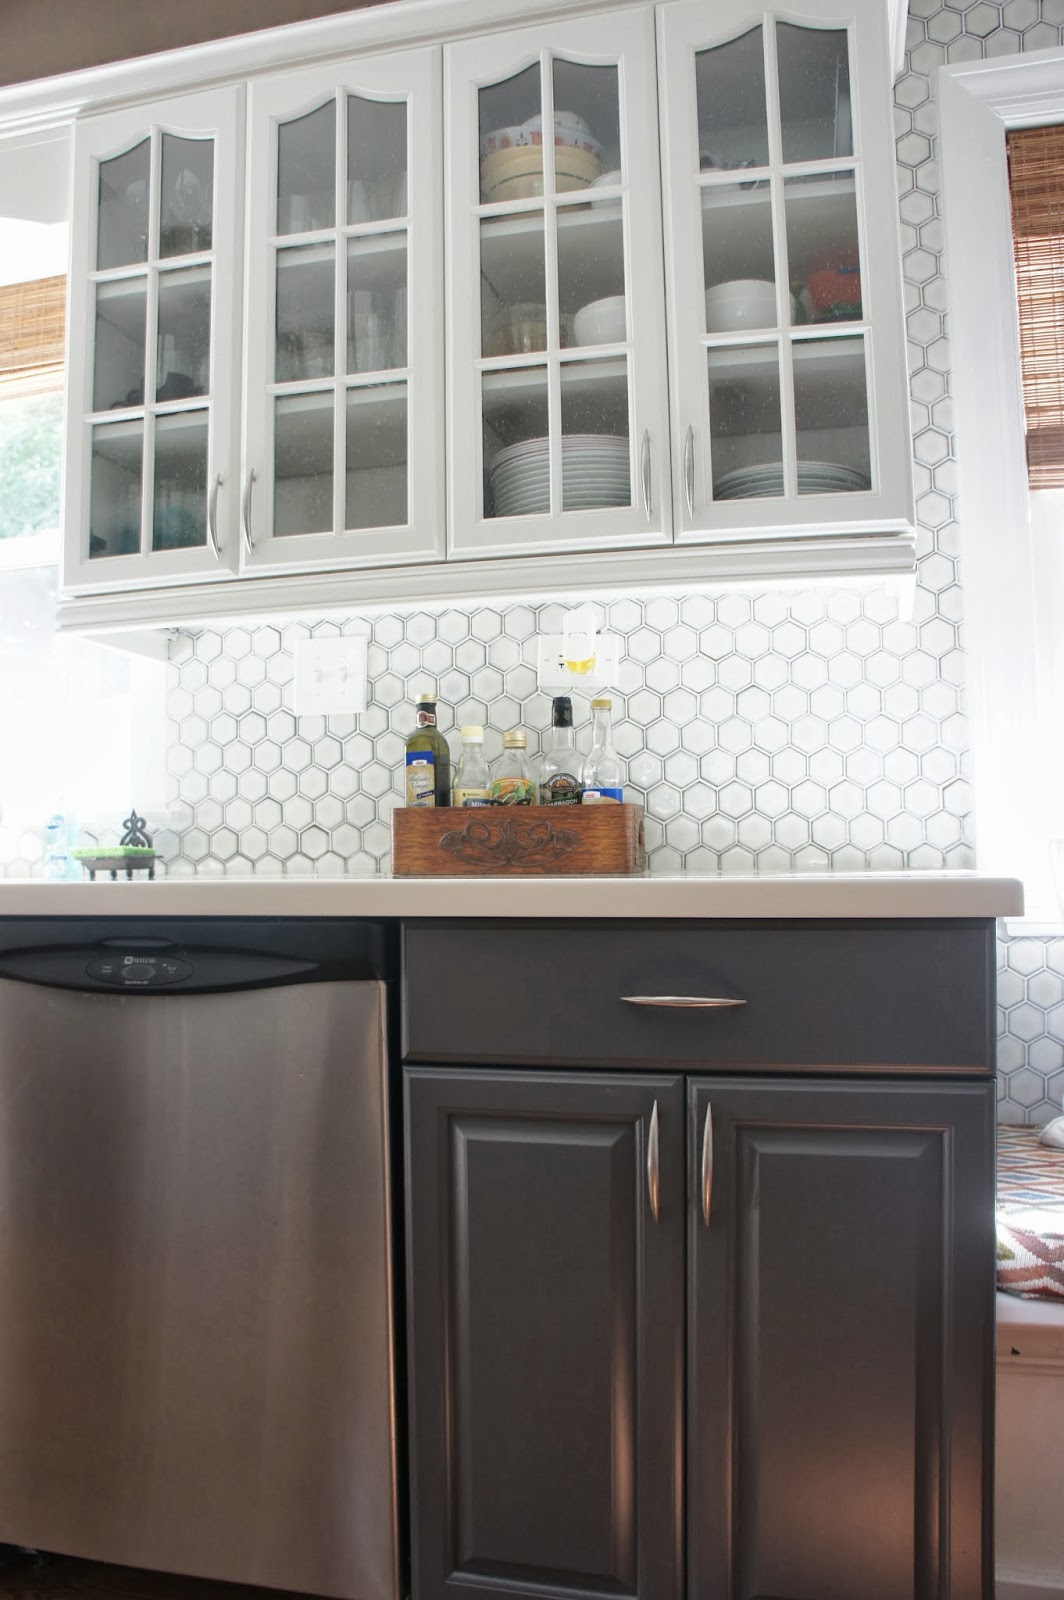 two-tone-gray-and-white-painted-kitchen-cabinet-makeover-featured-on-Remodelaholic.jpg